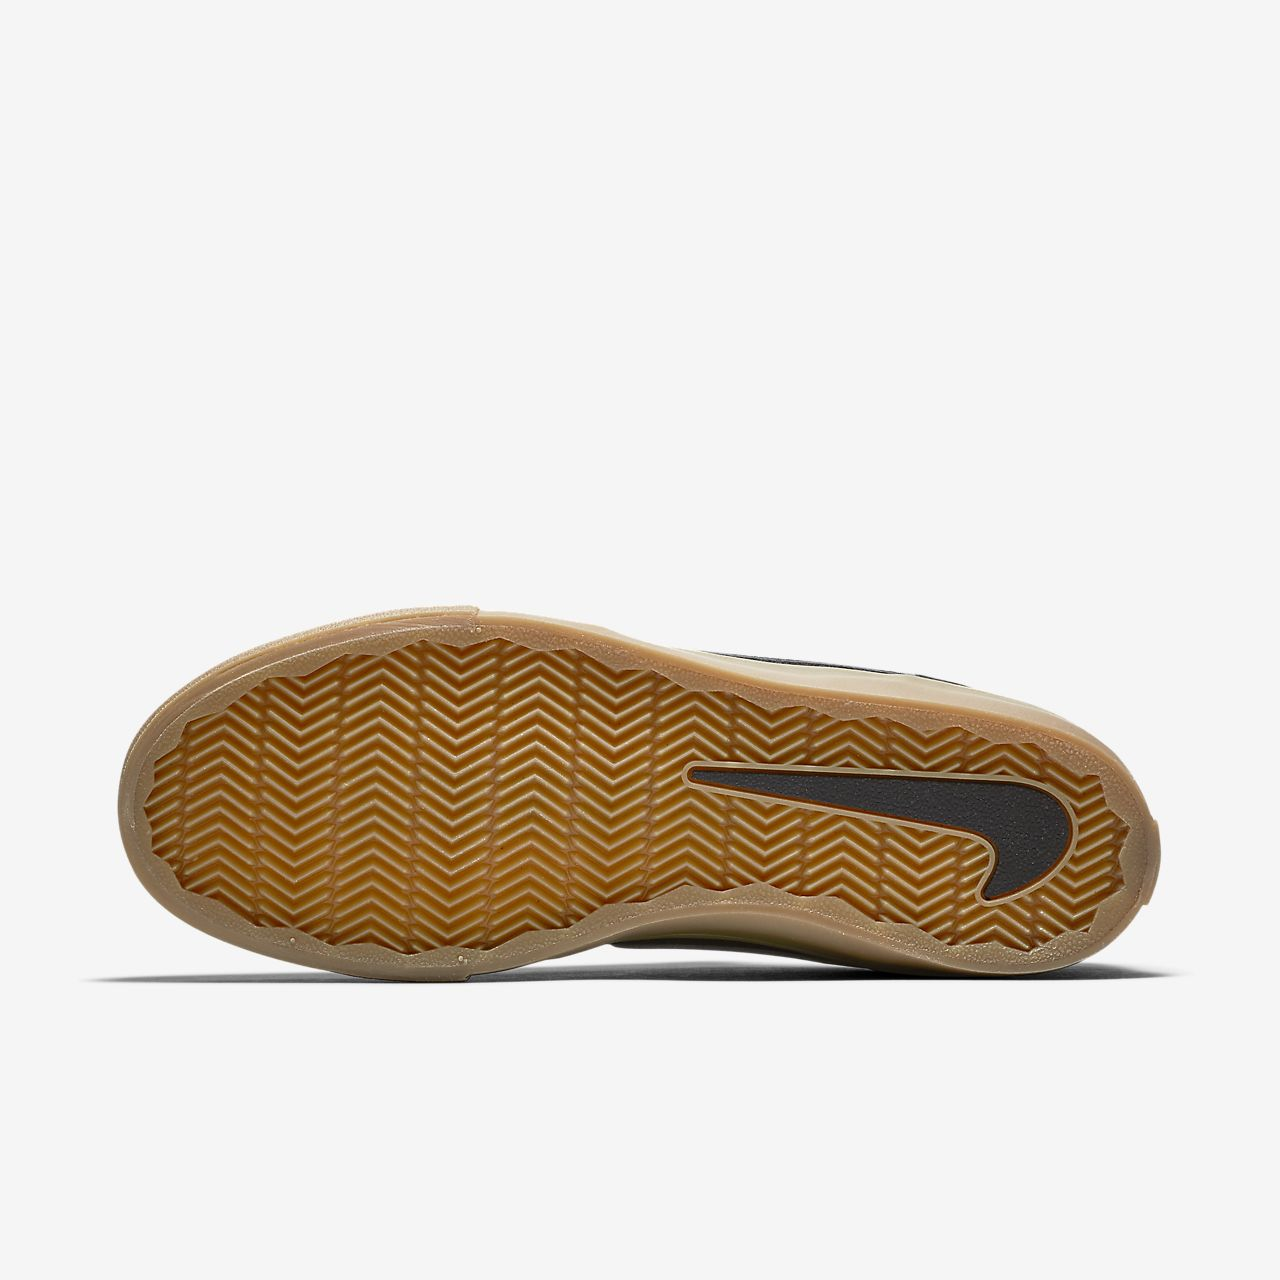 brand new 9a699 0442a ... Chaussure de skateboard Nike SB Solarsoft Portmore II pour Homme